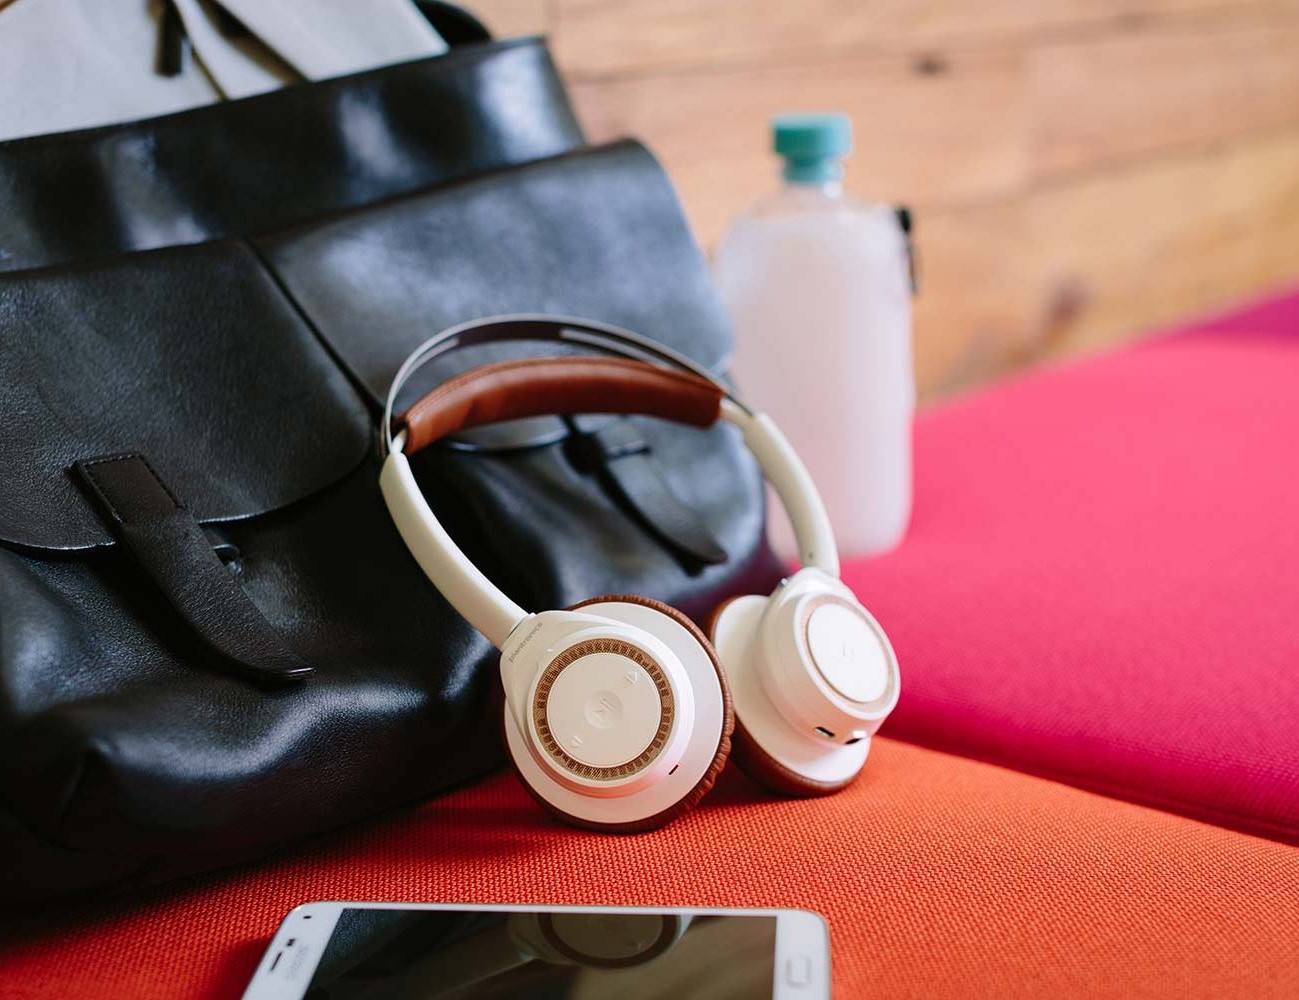 Backbeat+SENSE+SE+Special+Edition+Headphones+By+Plantronics